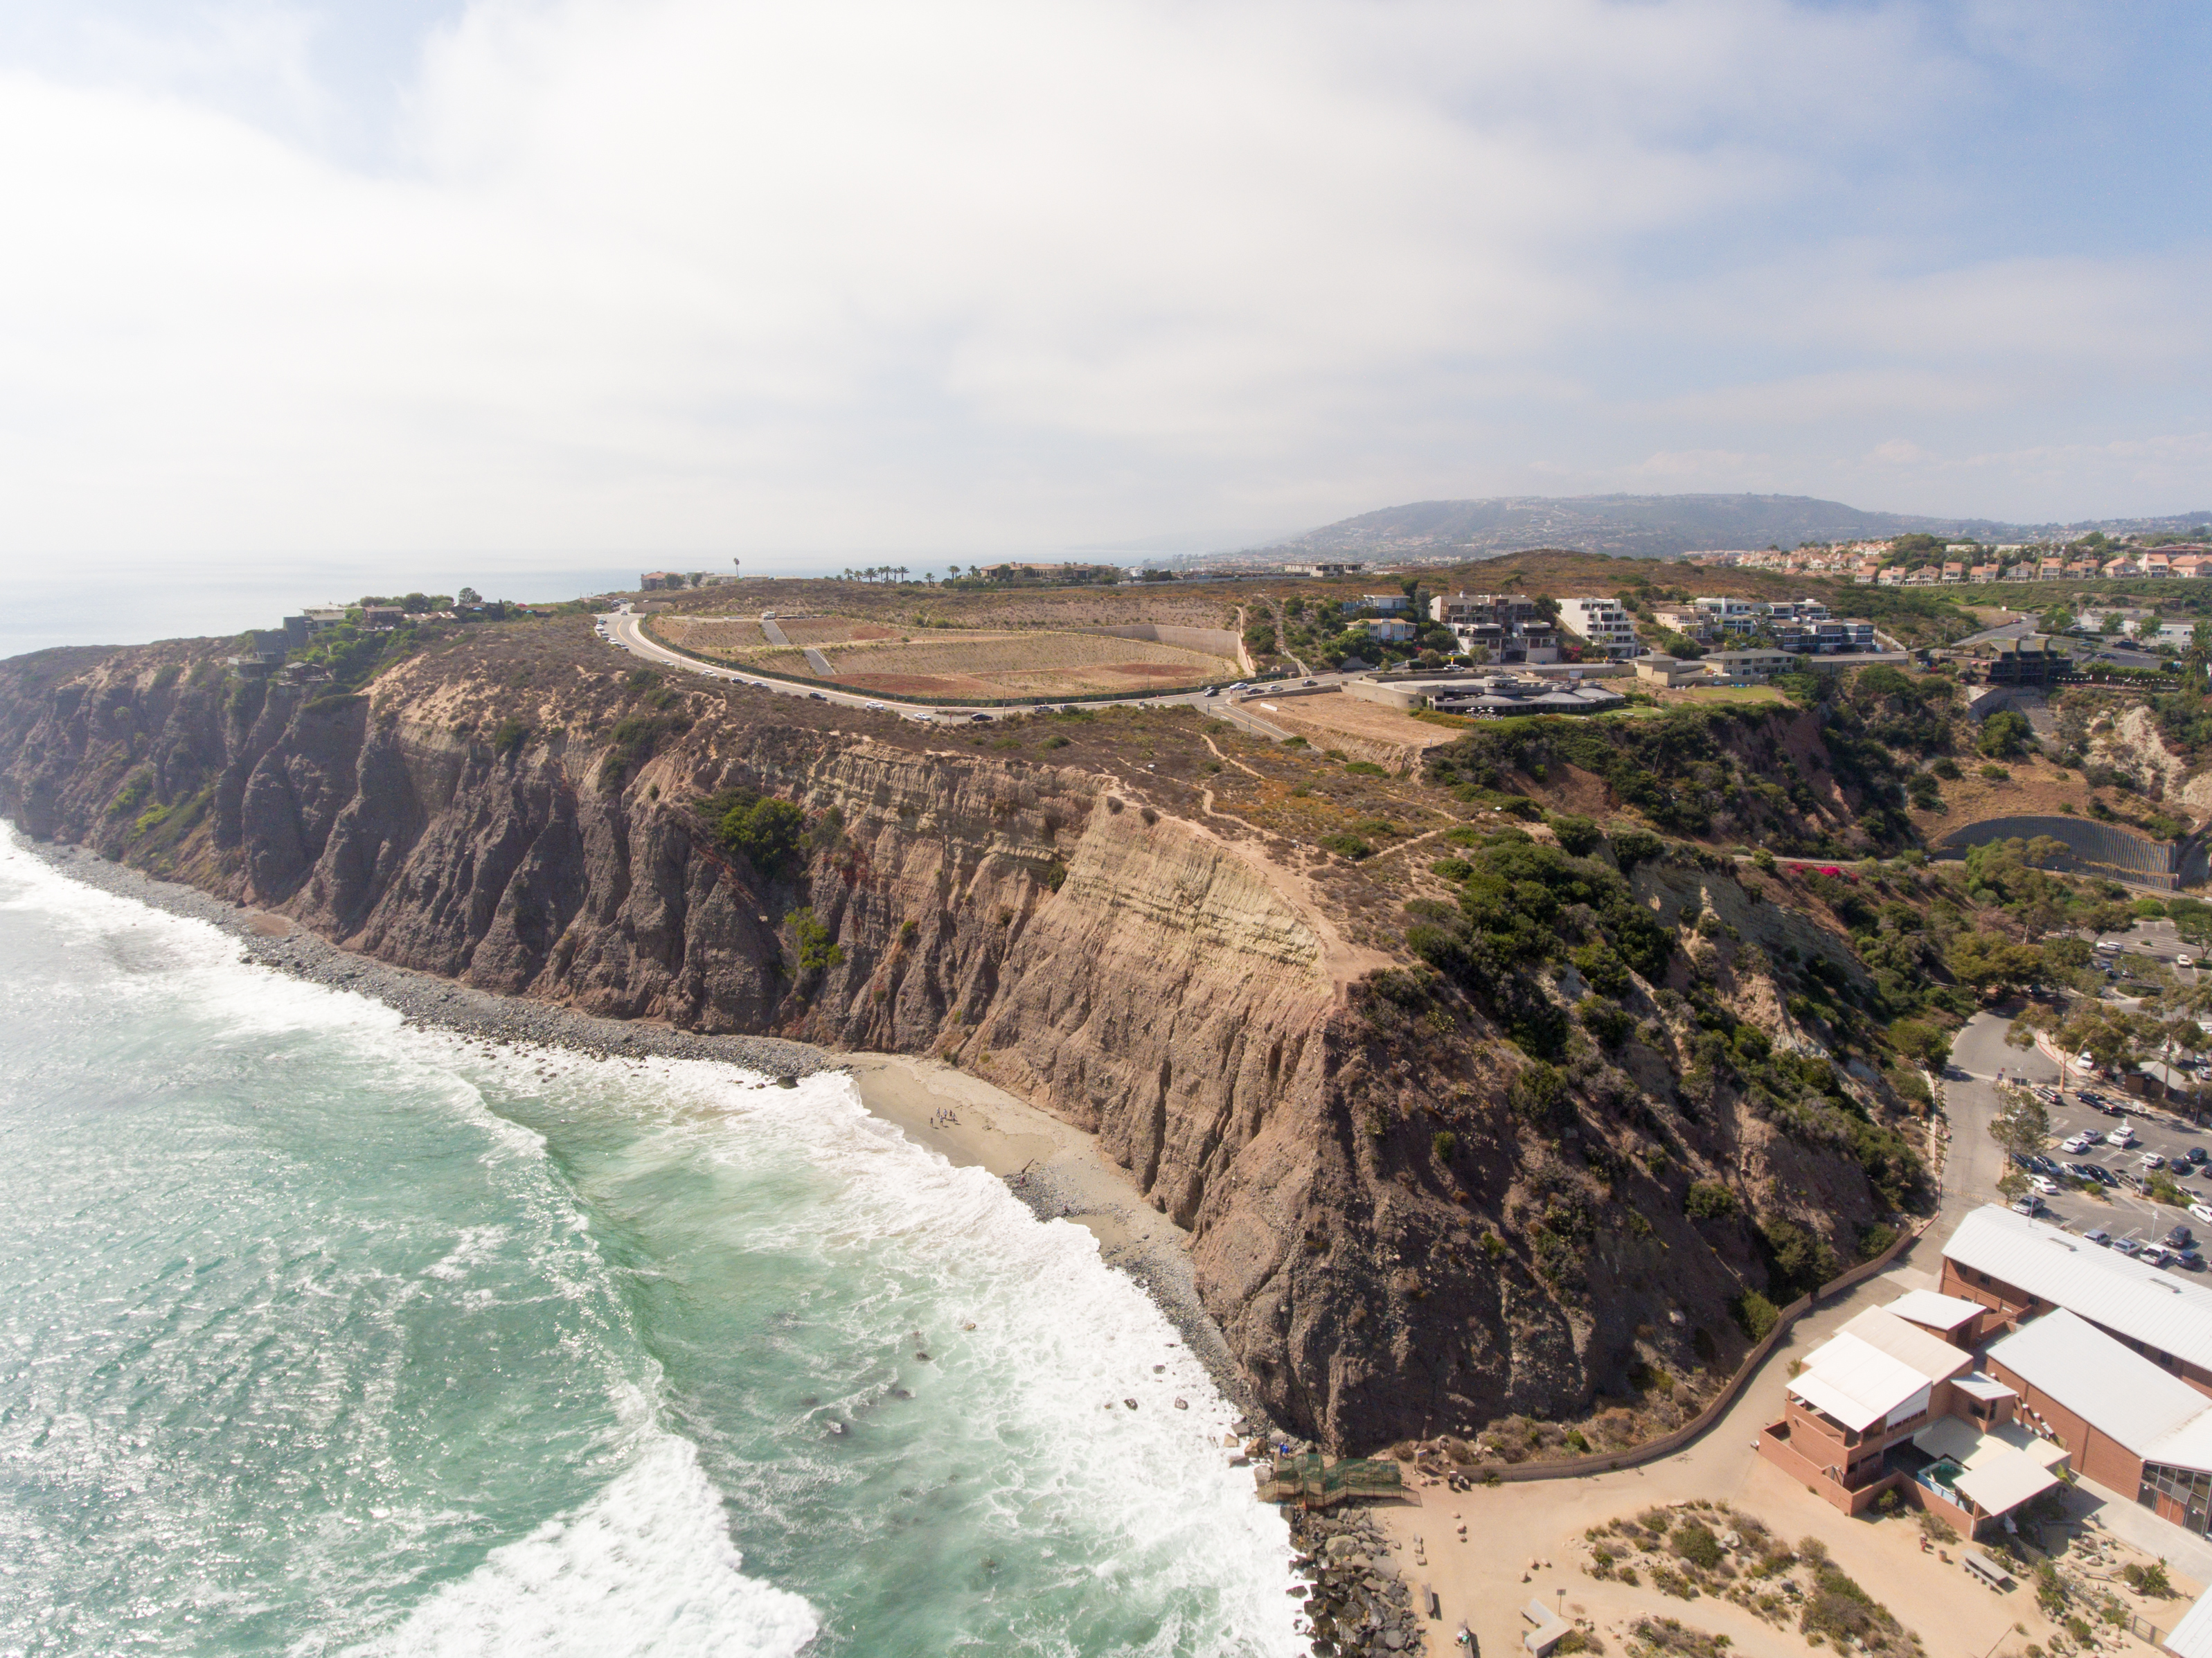 arial view of the cliffs and beach of Dana Point, CA